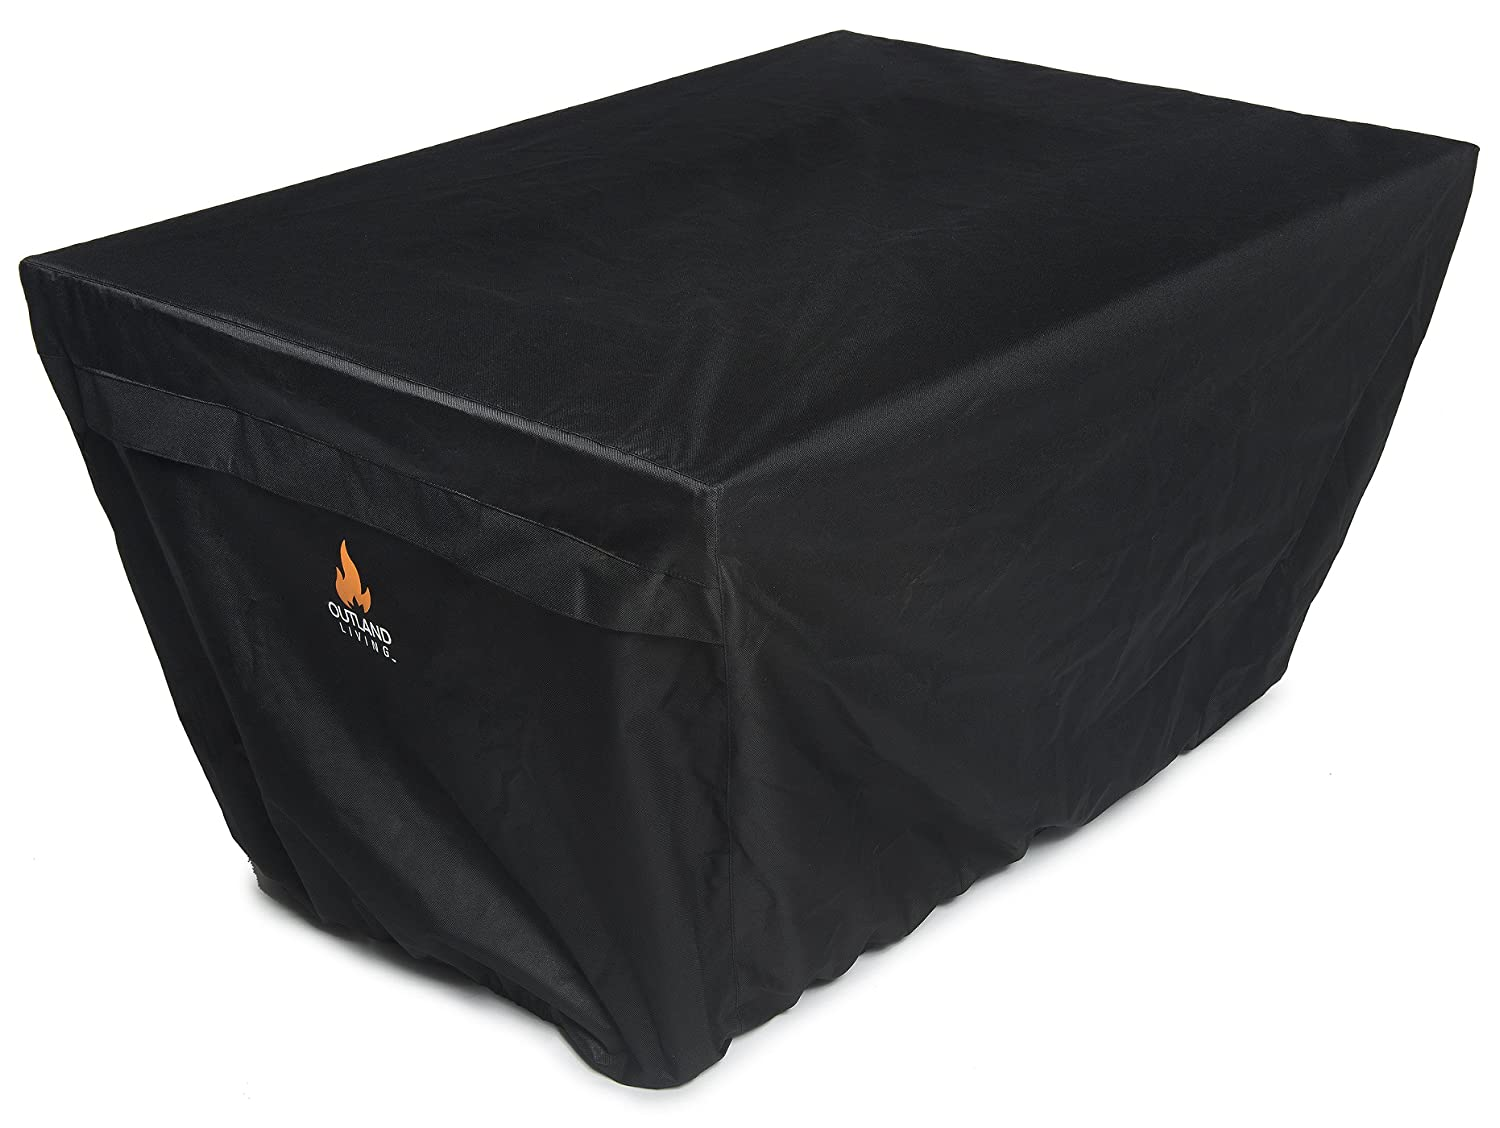 Outland Fire Table UV & Water Resistant Durable Cover for Outland Series 401 Fire Tables, Rectangular 45-Inch x 33-Inch Outland Living 793